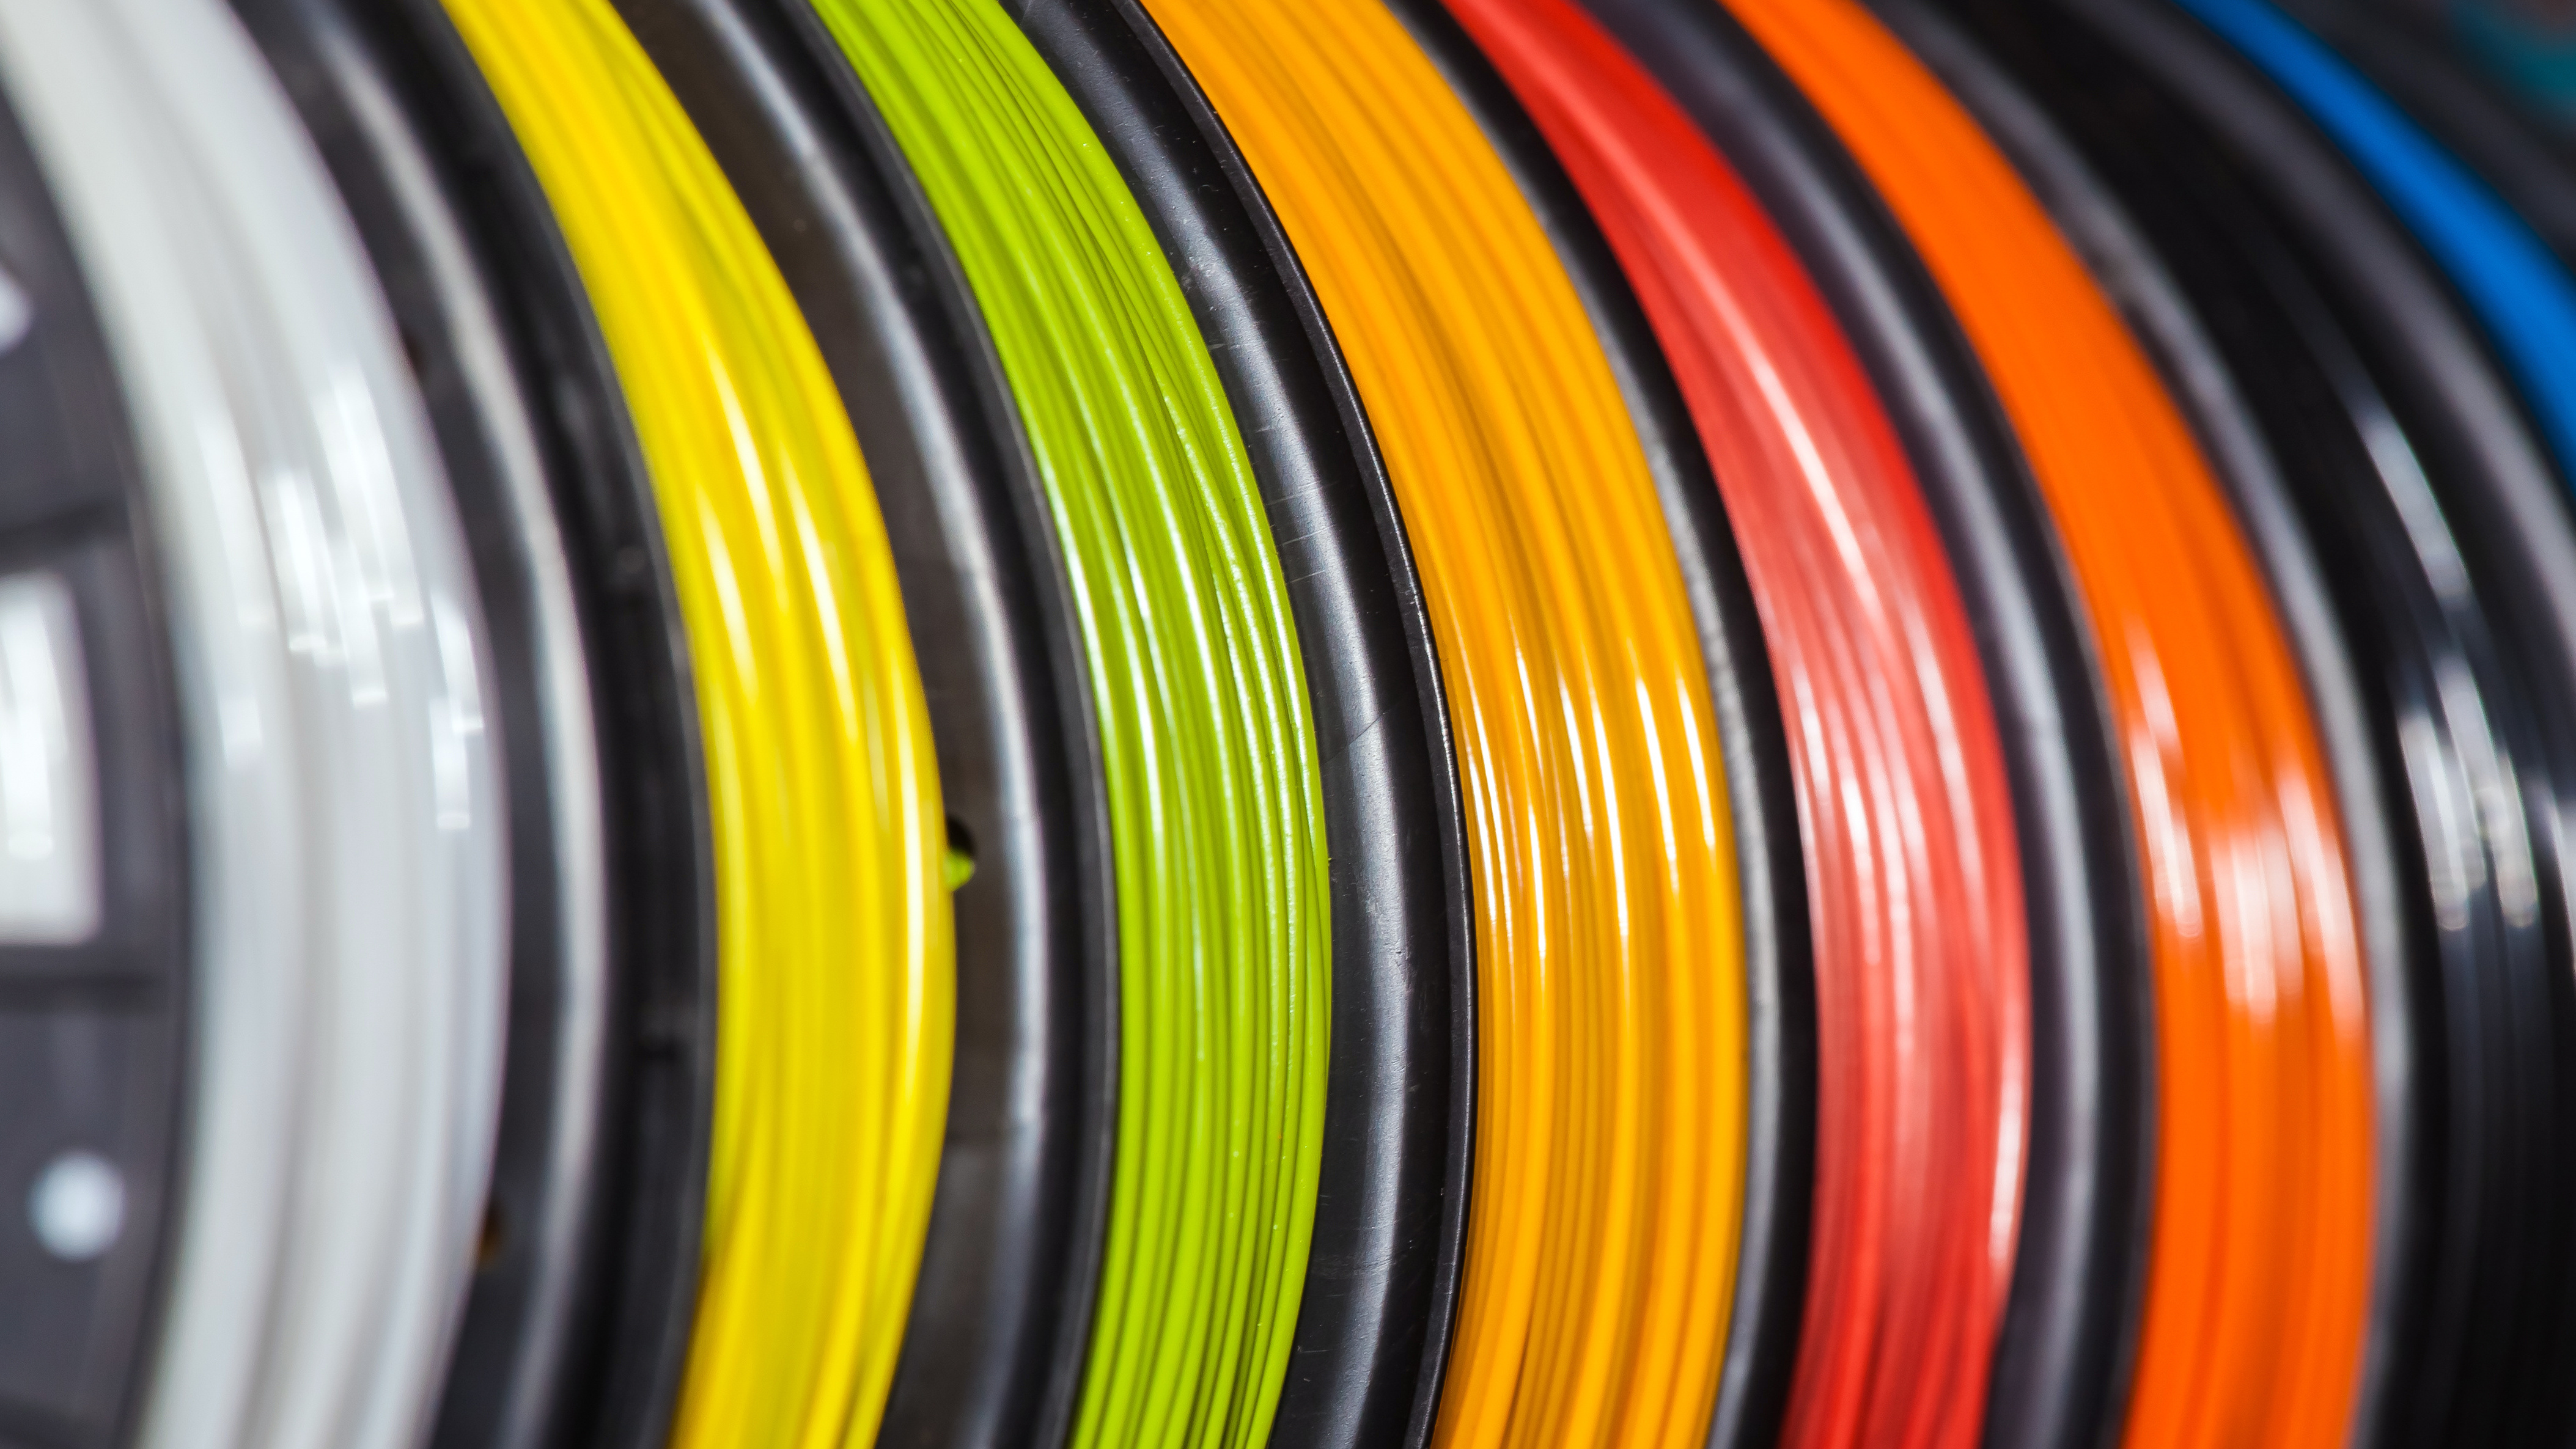 242c967c38 Tariff Expansion Set To Hit 3D-Printing Right In The Filament | Hackaday